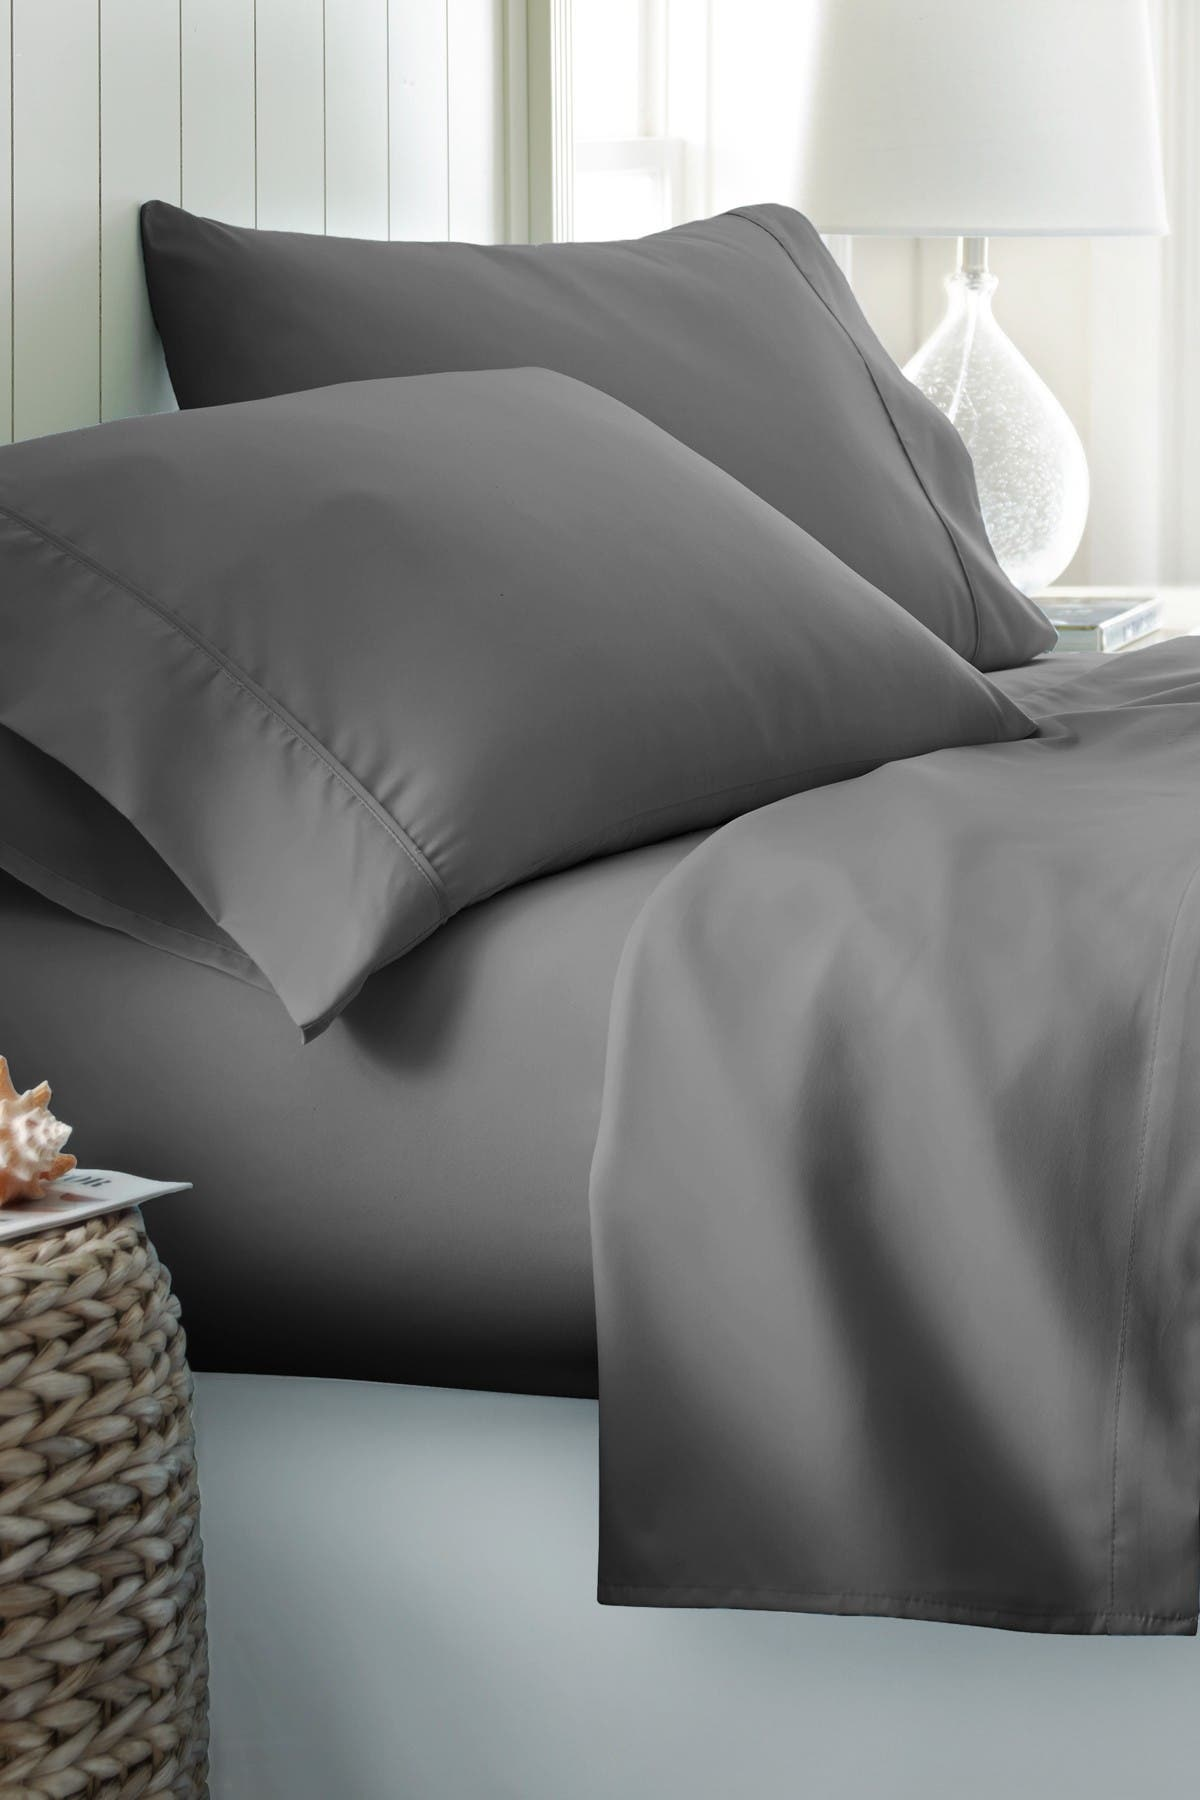 Image of IENJOY HOME California King Hotel Collection Premium Ultra Soft 4-Piece Bed Sheet Set - Gray